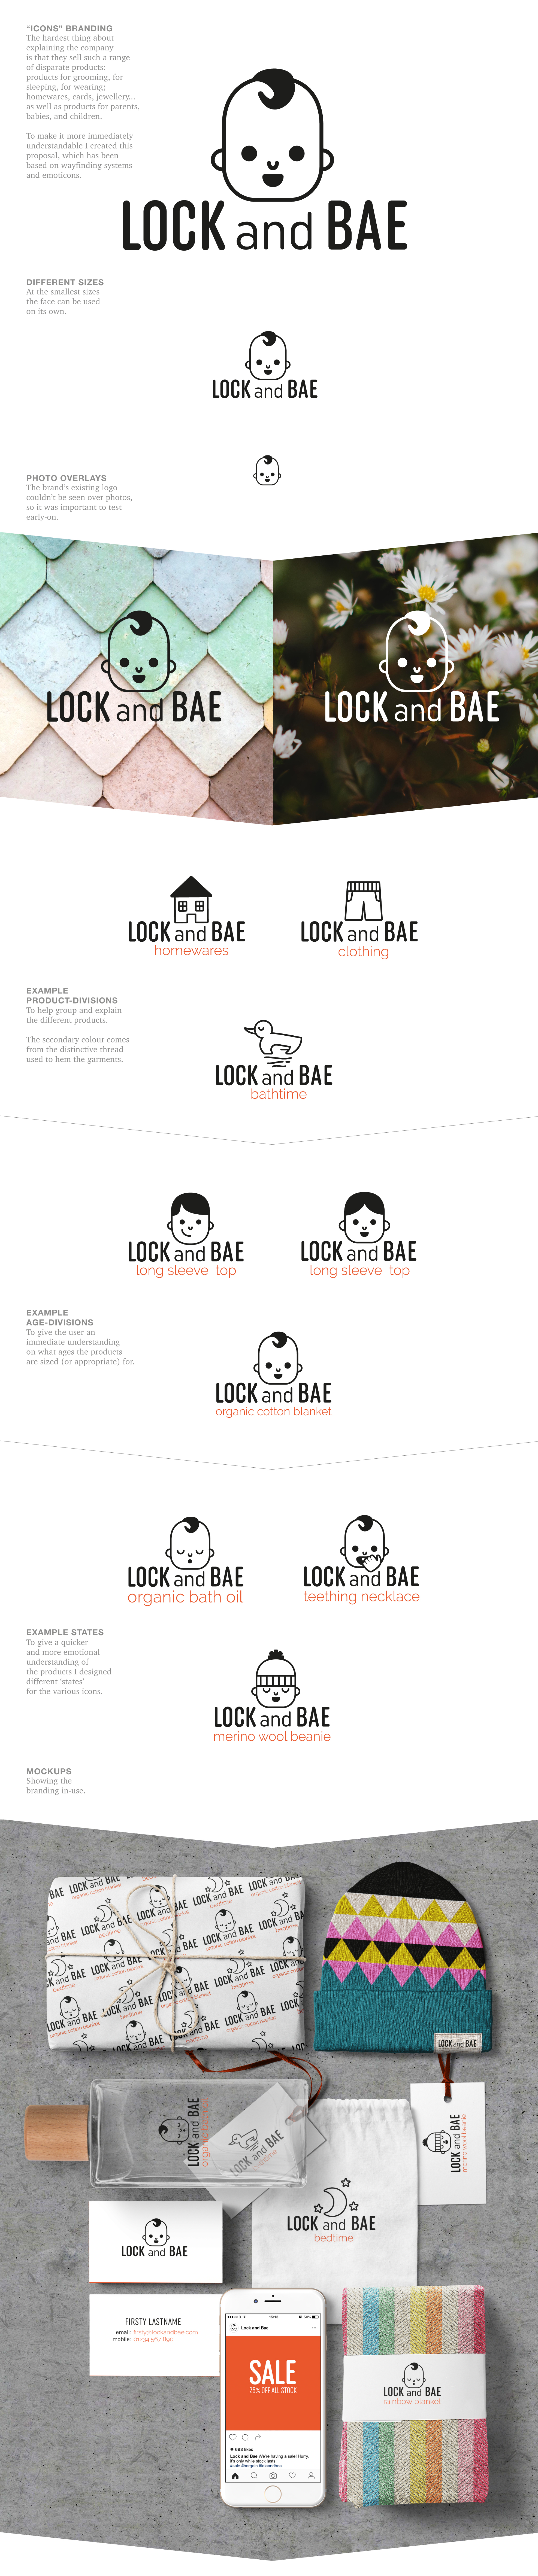 One of three first-round proposals for a family lifestyle brand, by Mister Ames